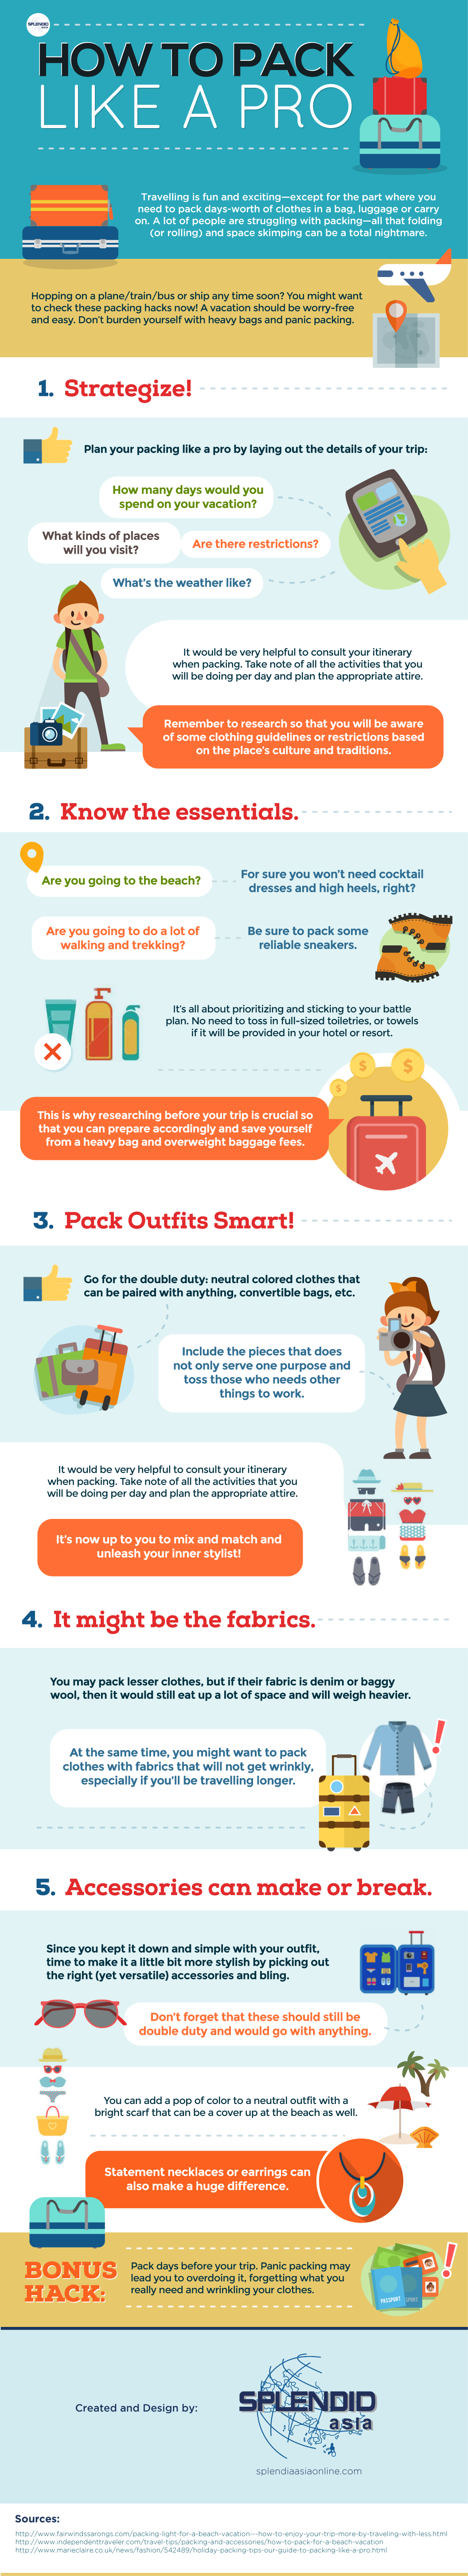 pack light like a pro, infographic